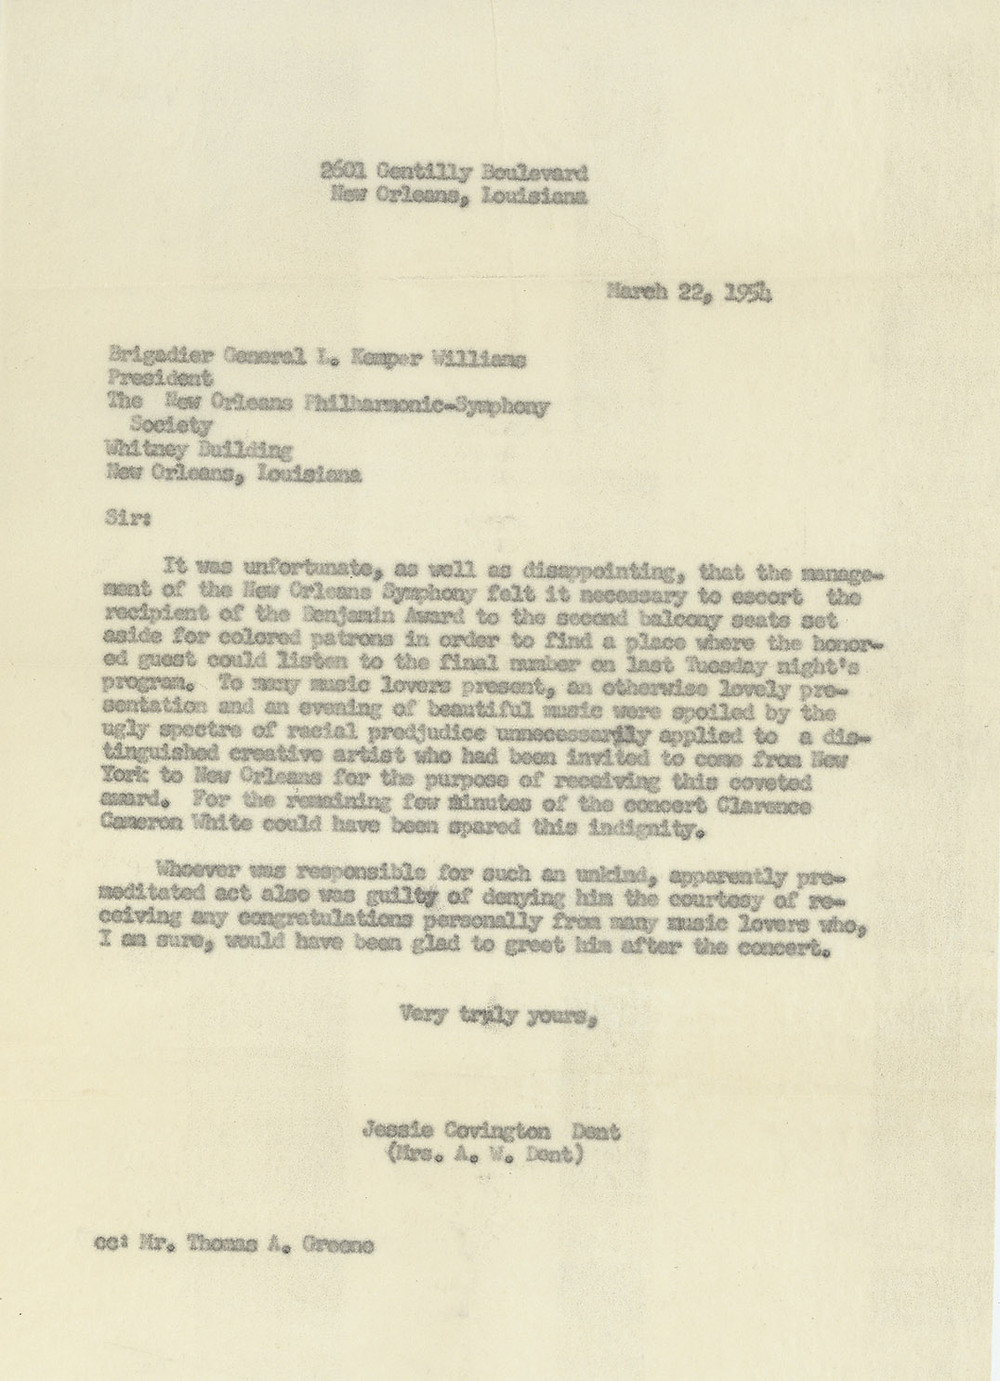 Jessie Covington Dent wrote a letter to the president of the New Orleans Philharmonic-Symphony Society expressing her disappointment at an act of racial prejudice toward an African-American award recipient during a performance.